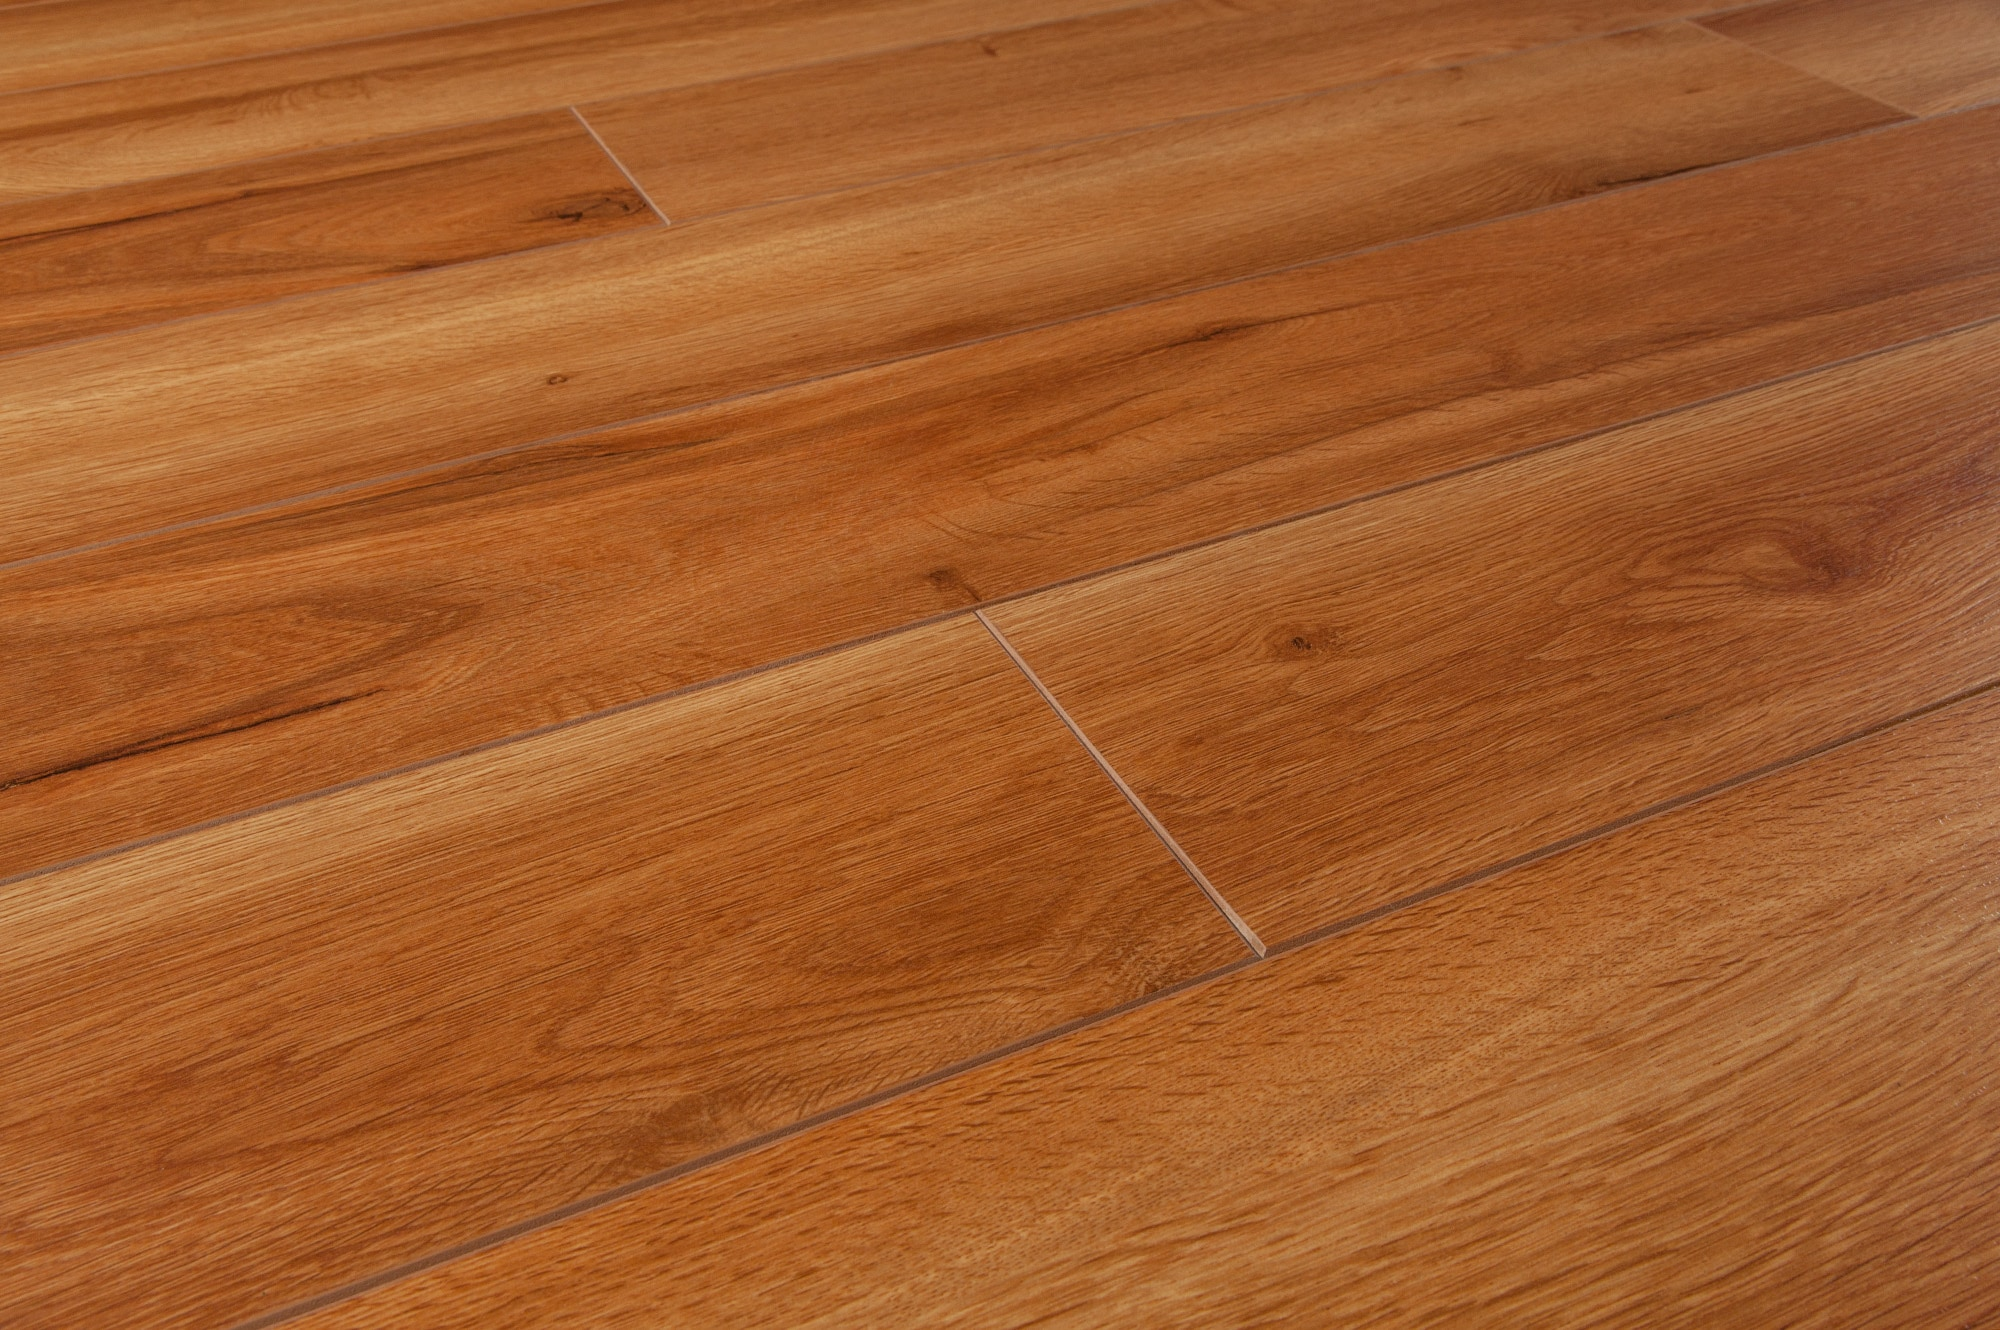 Laminat flooring carpet review for Laminate flooring company